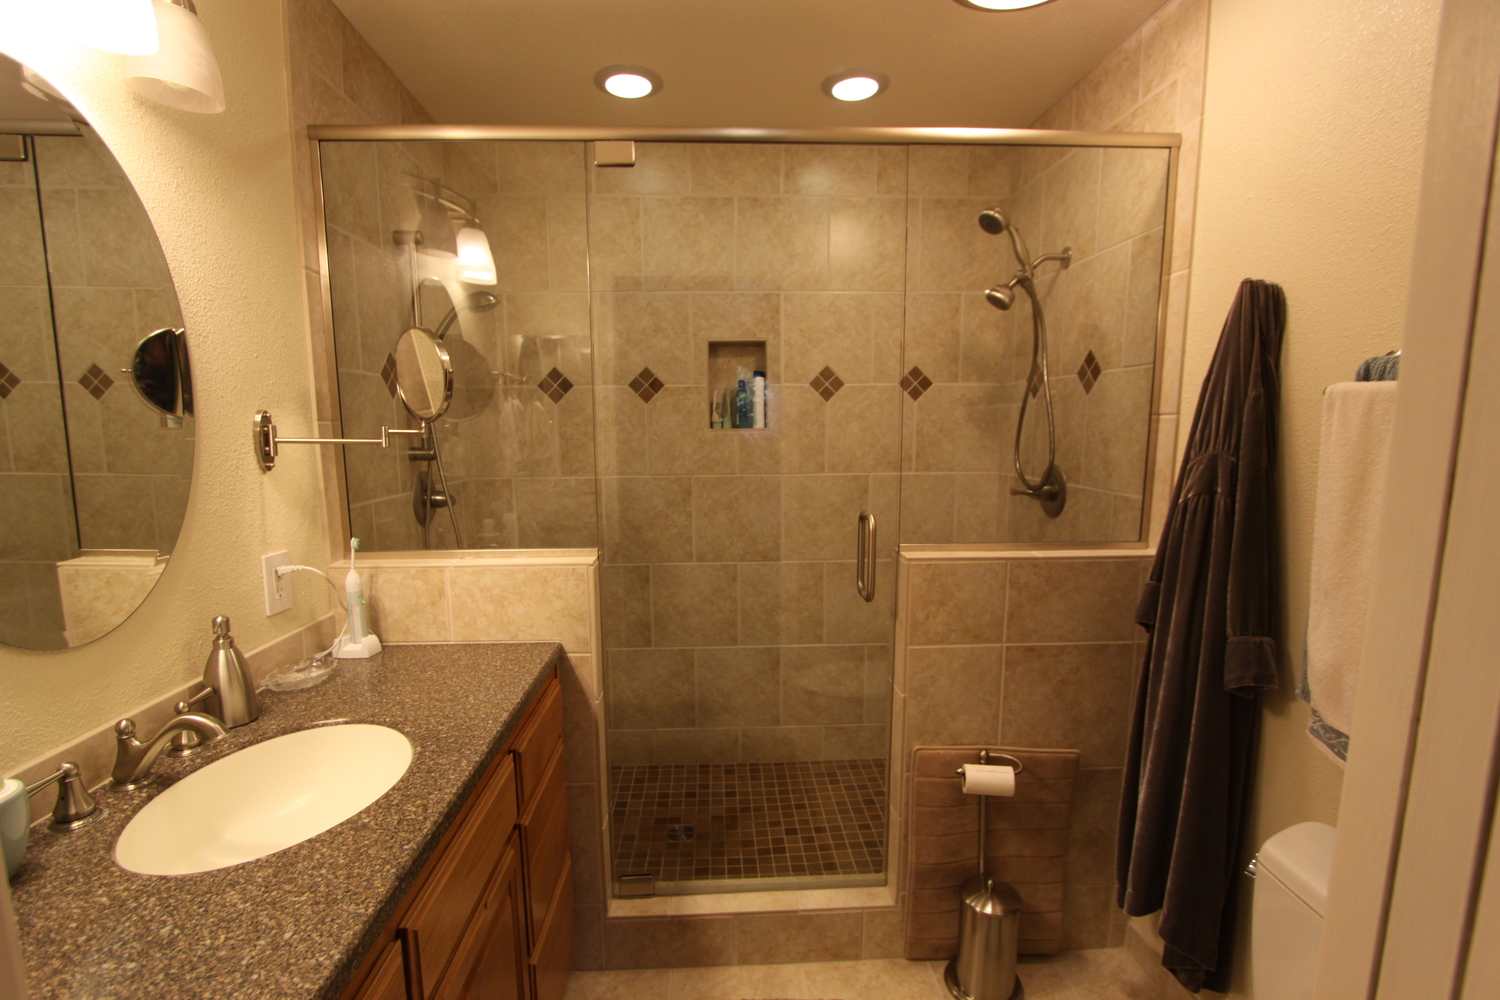 Bathrooms Southwestern Home Design And Remodeling LLC - How much is a bathroom remodel for bathroom decor ideas